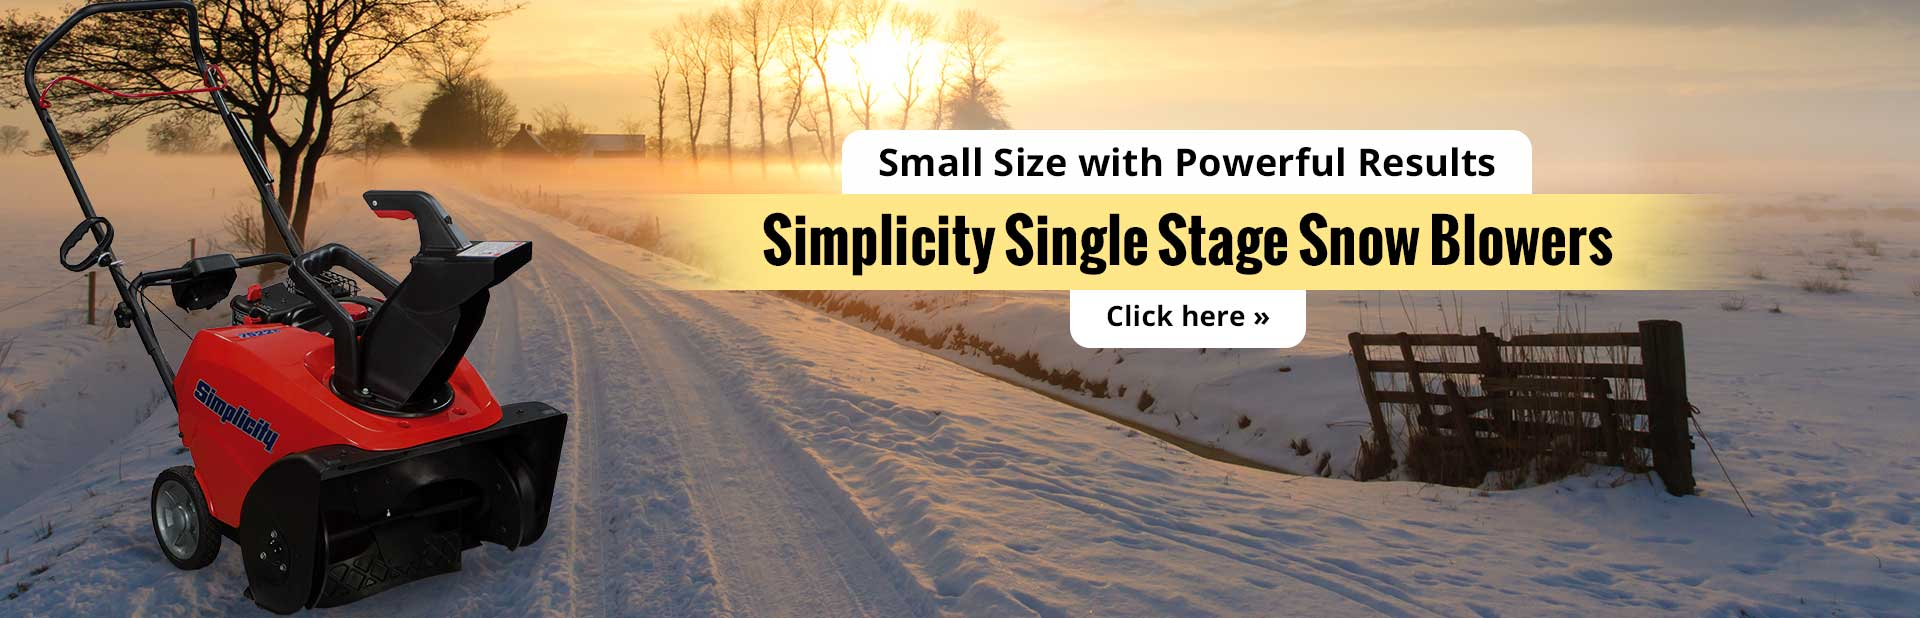 Simplicity single stage snow blowers are small in size, but they have powerful results! Click here t